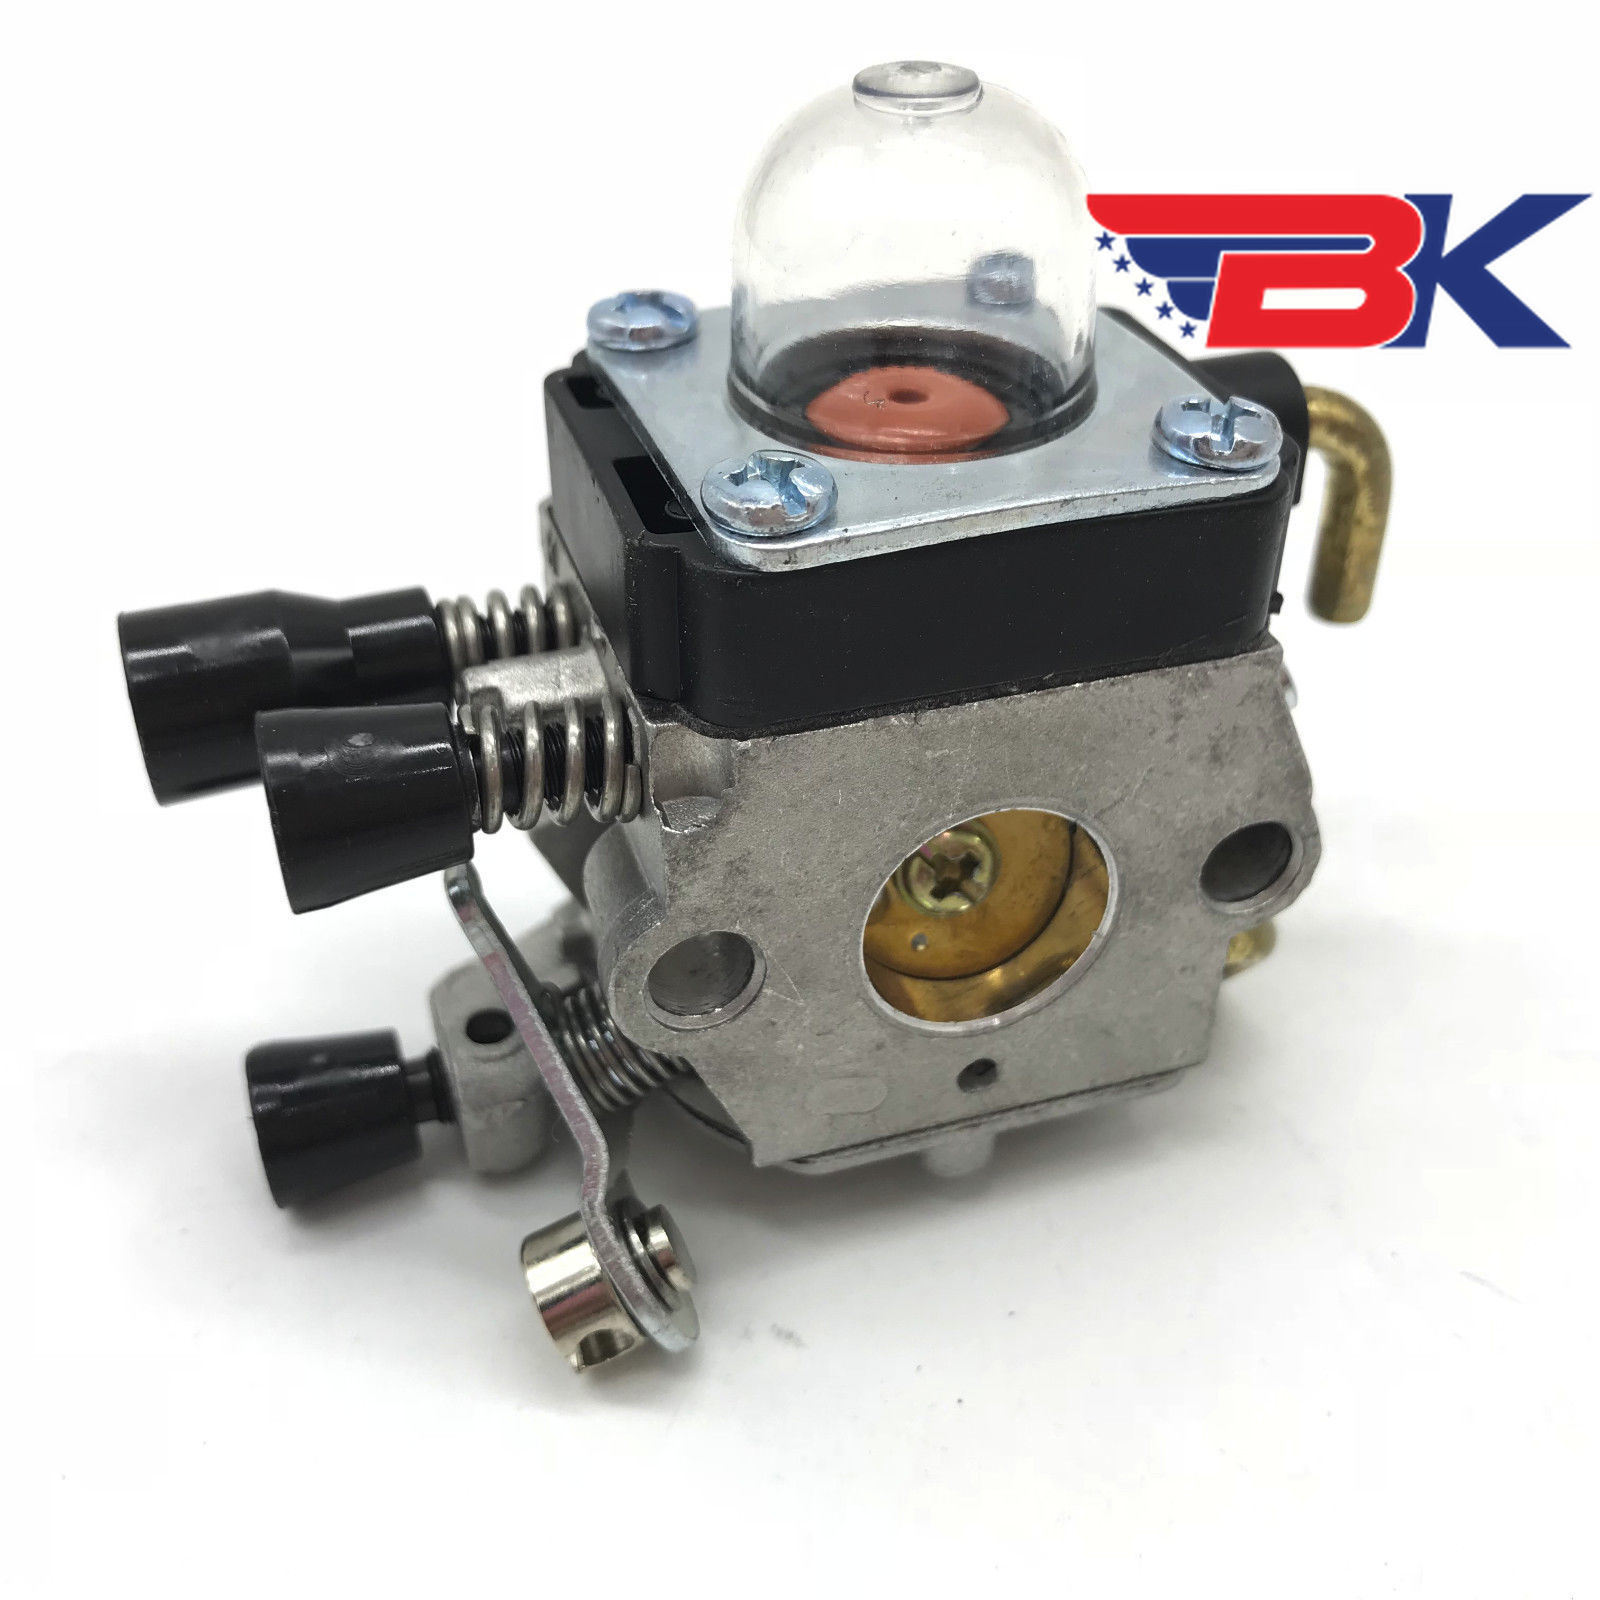 Zama OEM <font><b>Carburetor</b></font> <font><b>for</b></font> <font><b>Stihl</b></font> <font><b>FS38</b></font> HS45 <font><b>FS45</b></font> FC55 FS310 Trimmer 4228 120 0608 image